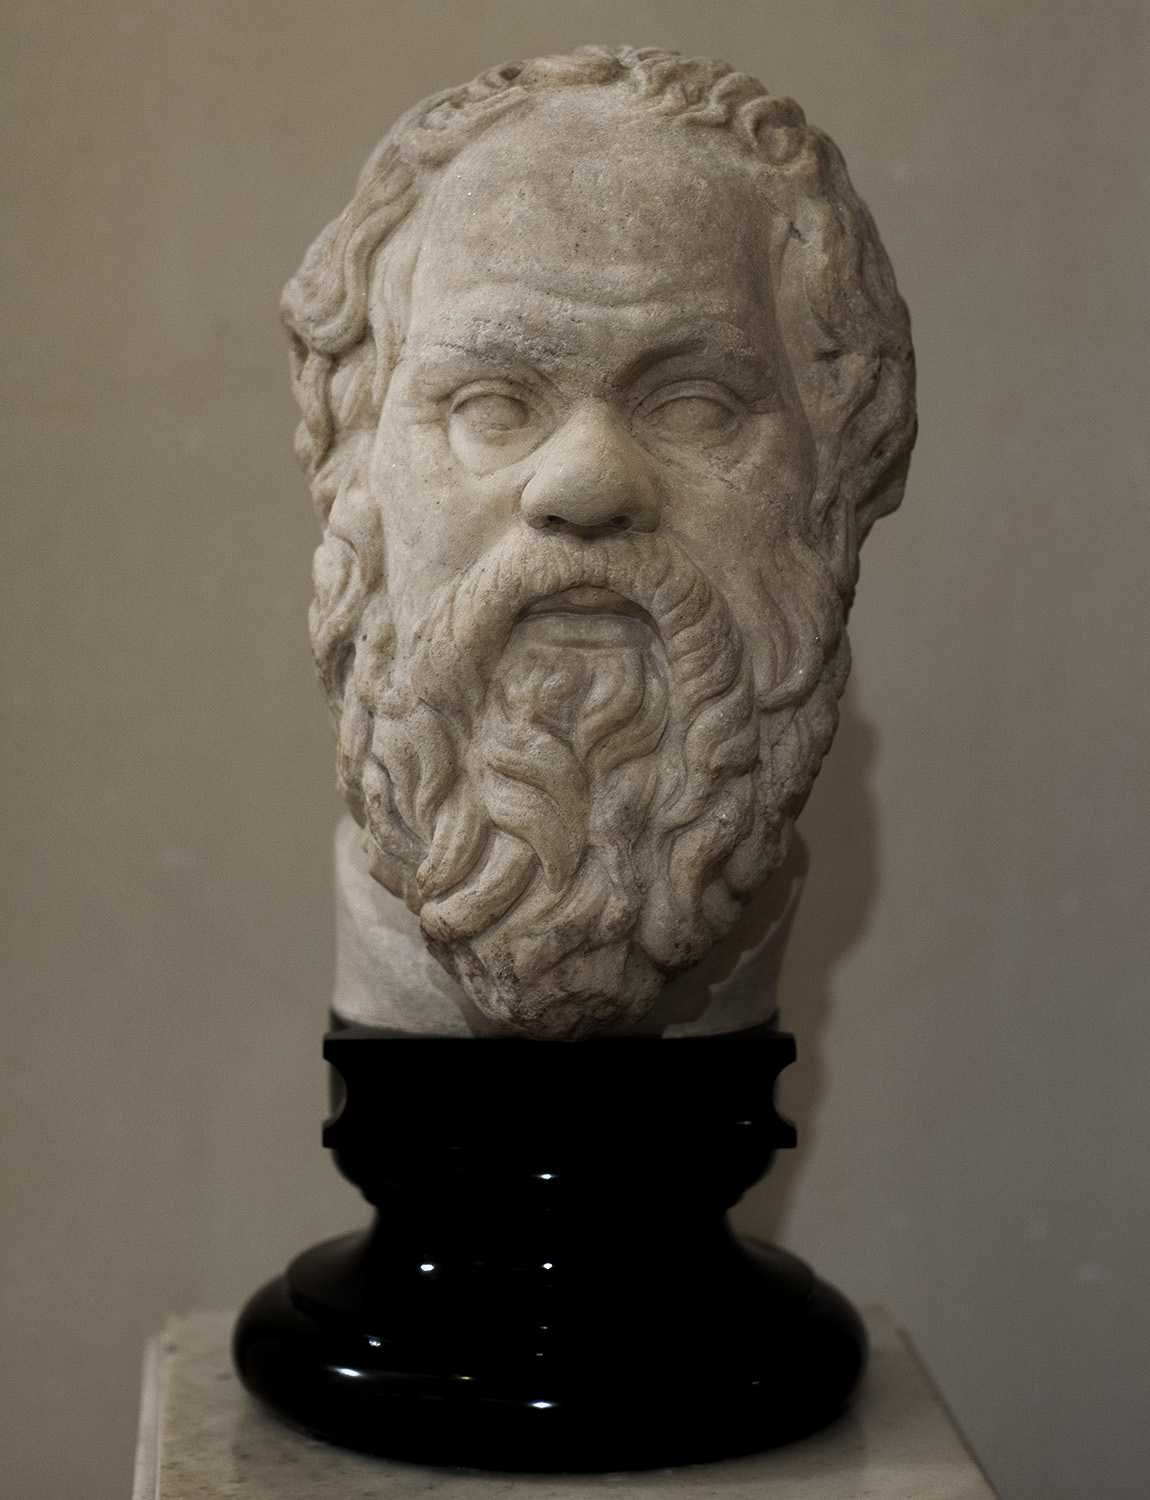 Socrates. Marble. Roman work of the II cent. CE after a Greek original of the third quarter of the 4th cent. BCE by Lysippos. Inv. No. Гр. 4195 (A. 402 a). Saint Petersburg, The State Hermitage Museum